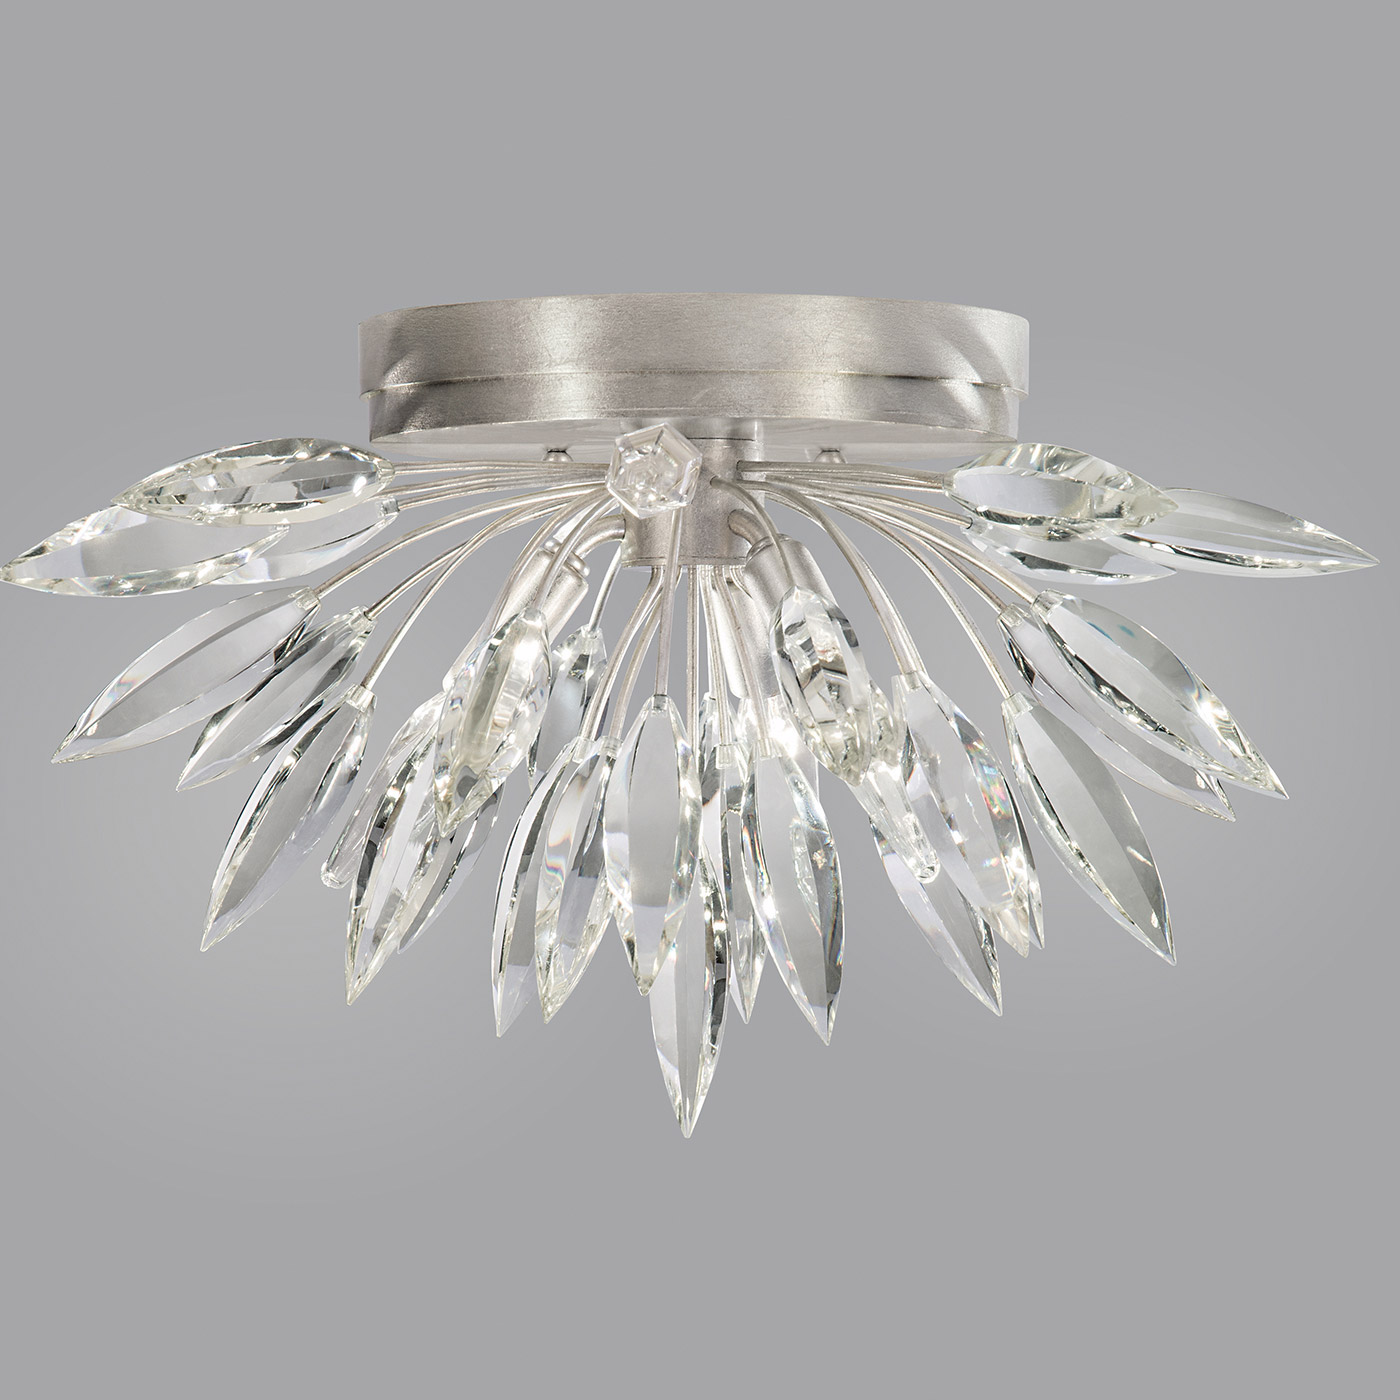 Buds ceiling light fixture by fine art lamps 881440 lily buds ceiling light fixture by fine art lamps 881440 arubaitofo Choice Image